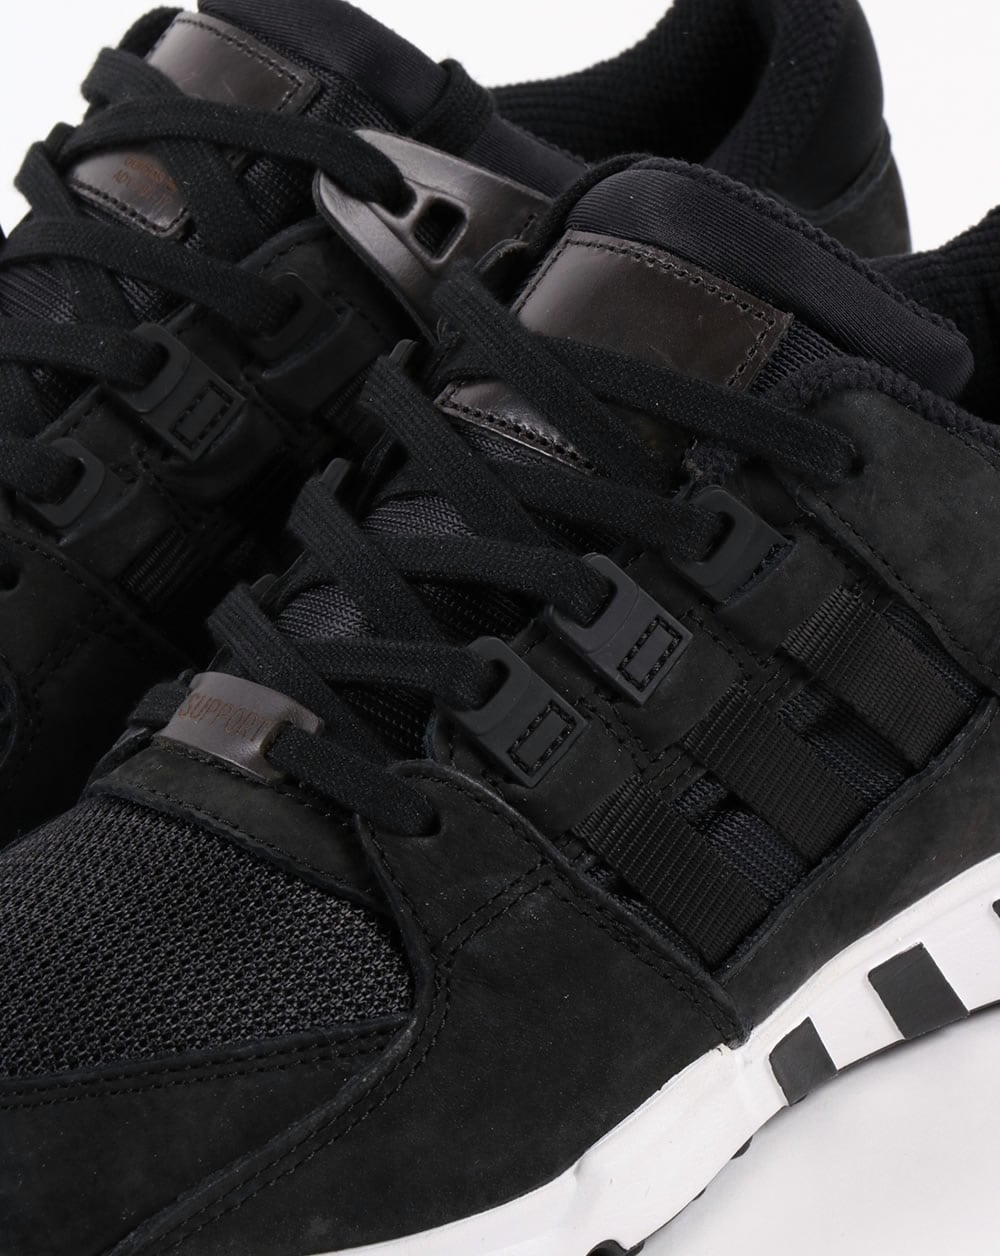 Adidas EQT Support RF (Core Black & Turbo) END.